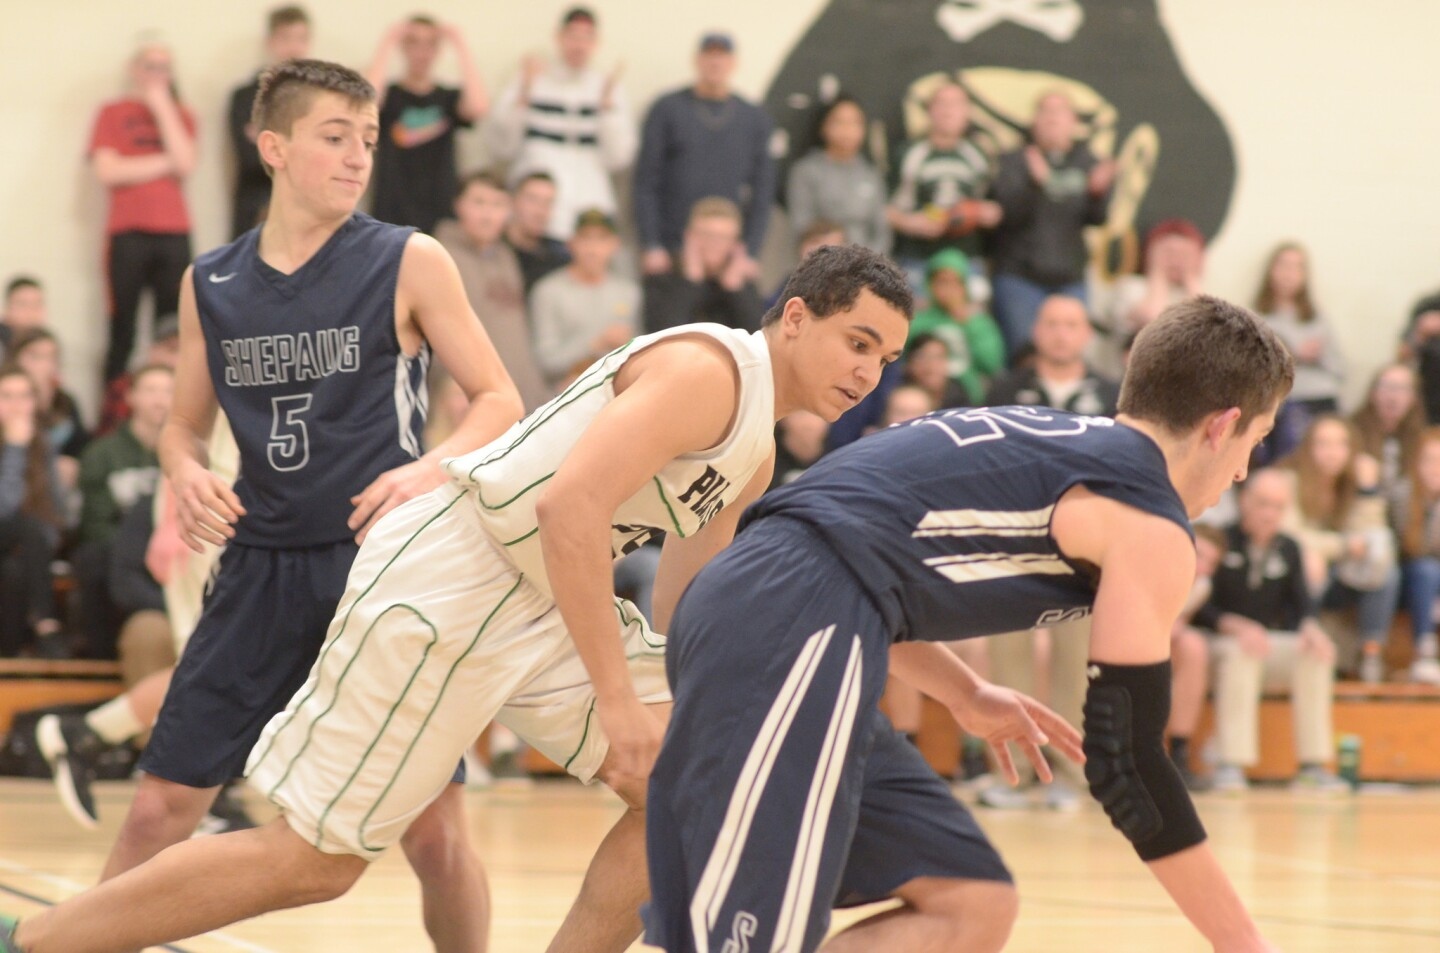 Parish Hill's Cameron Zaimoff keeps an eye on Shepaug Valley's Jack Schneider, during a state Class V second-round playoff game on March 7. Also shown at far left is Shepaug's Owen Hibbard.